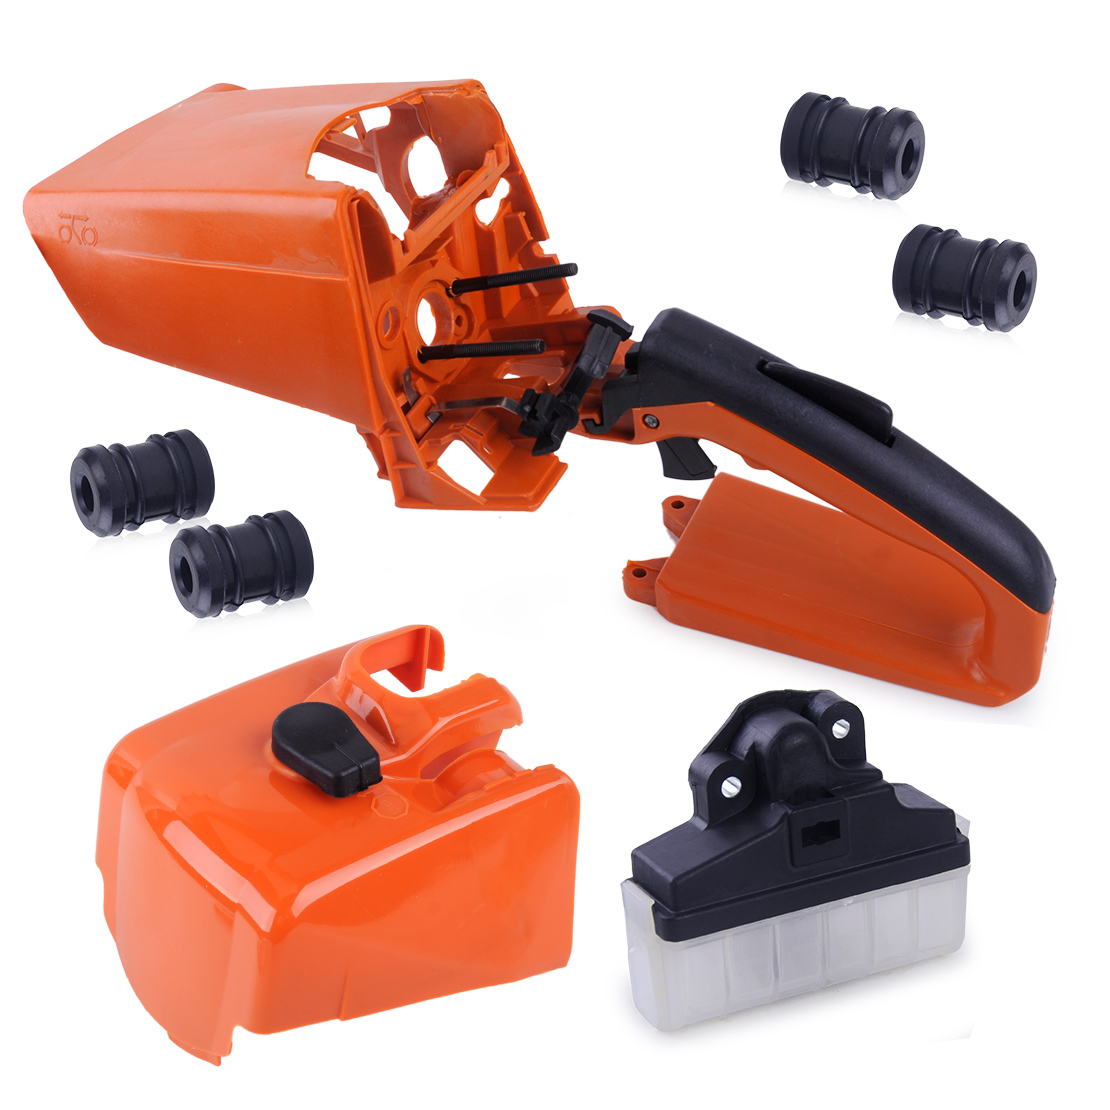 LETAOSK Rear Handle Top Shroud <font><b>Air</b></font> <font><b>Filter</b></font> Cover <font><b>Fit</b></font> for <font><b>STIHL</b></font> 021 023 025 MS250 MS230 MS210